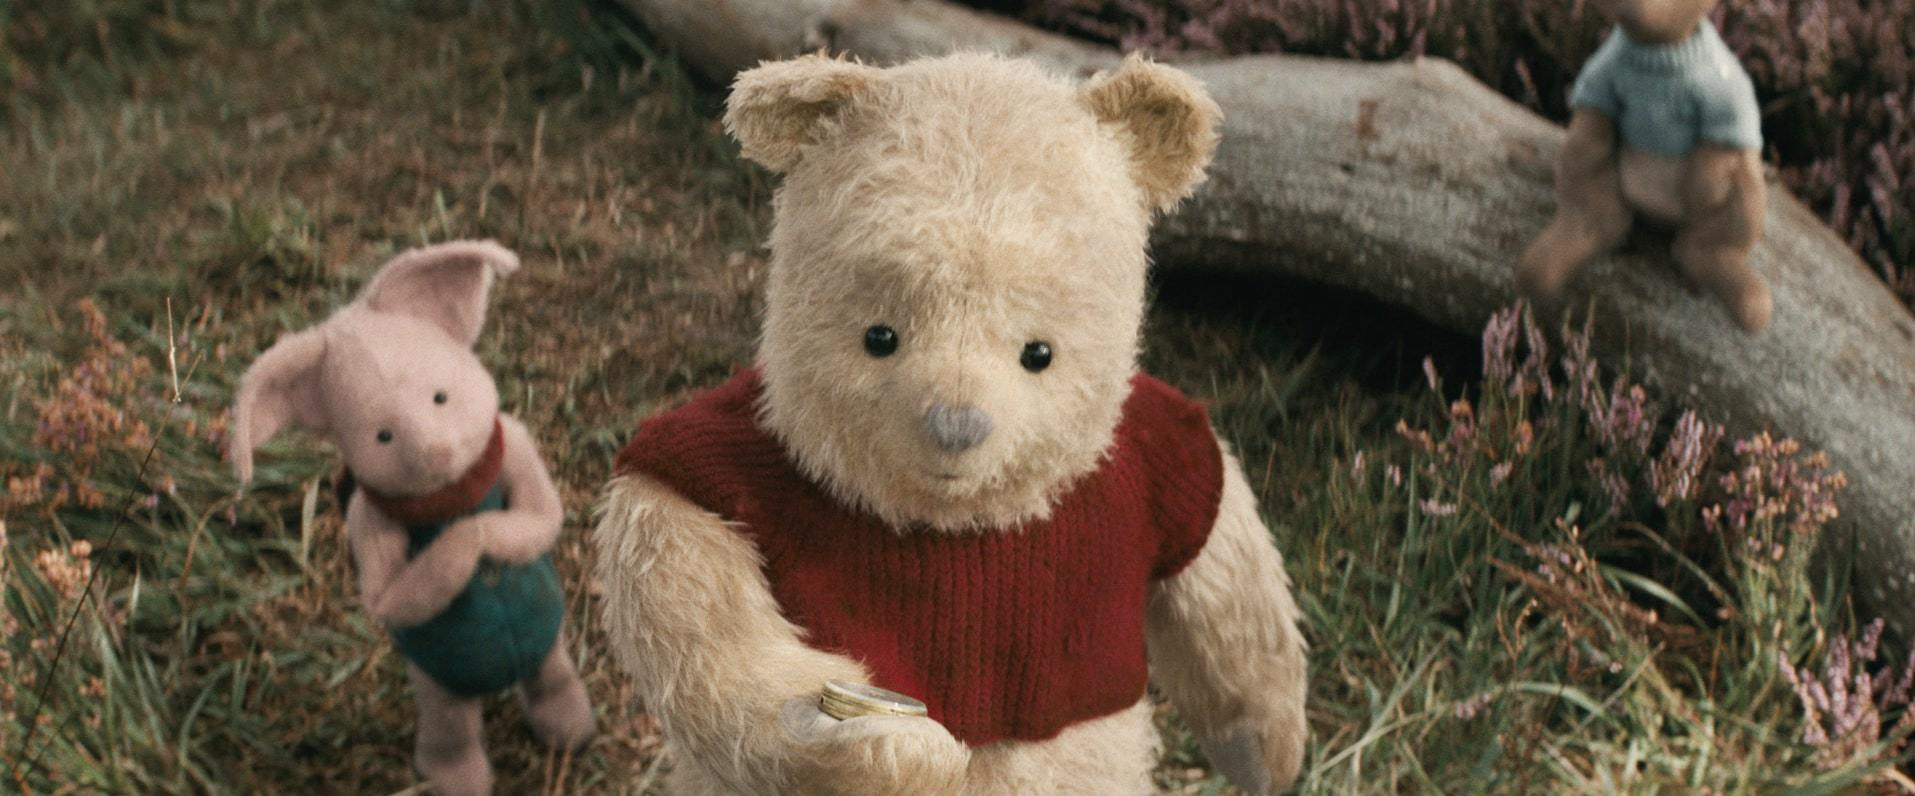 Winnie the Pooh Quotes for Everyone of Any Age – Winnie the Pooh Wisdom